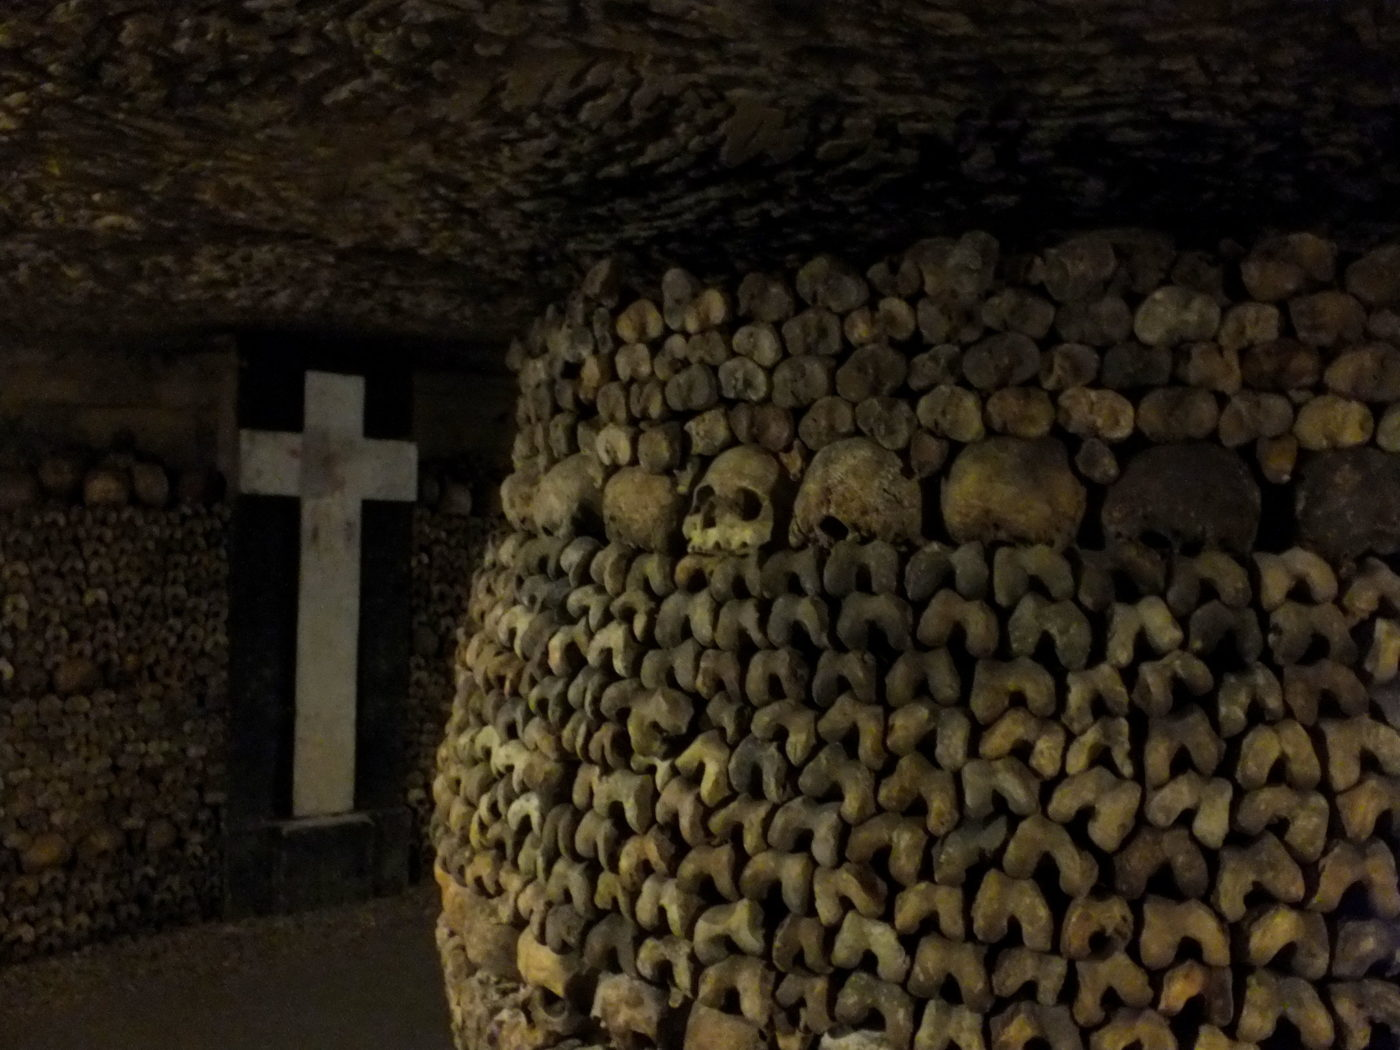 The Catacombs of Paris. Photo credit: Fraser Mummery, Flickr.